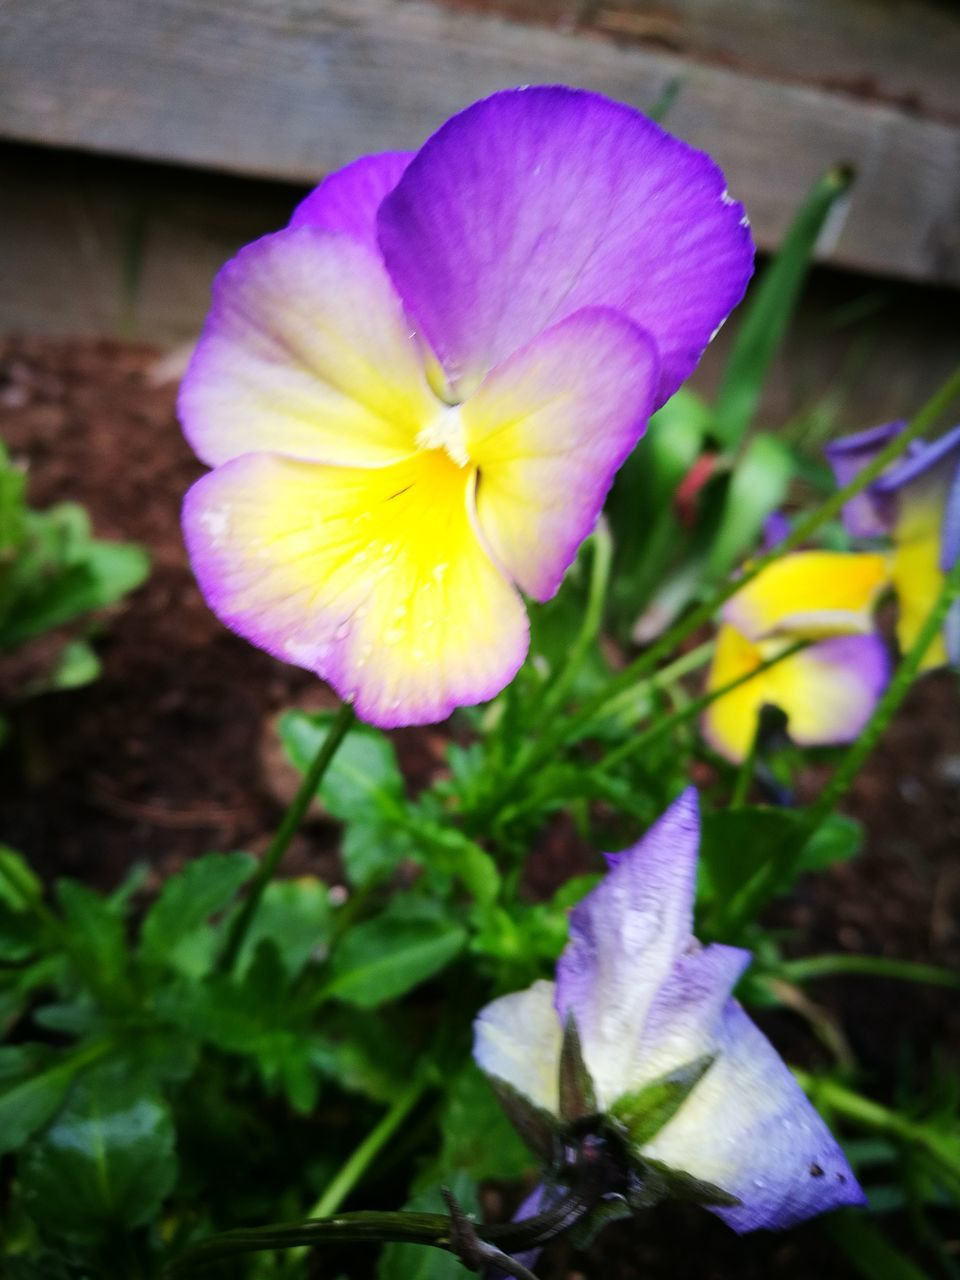 flower, petal, fragility, beauty in nature, flower head, nature, freshness, growth, plant, blooming, yellow, purple, no people, close-up, pansy, outdoors, day, crocus, petunia